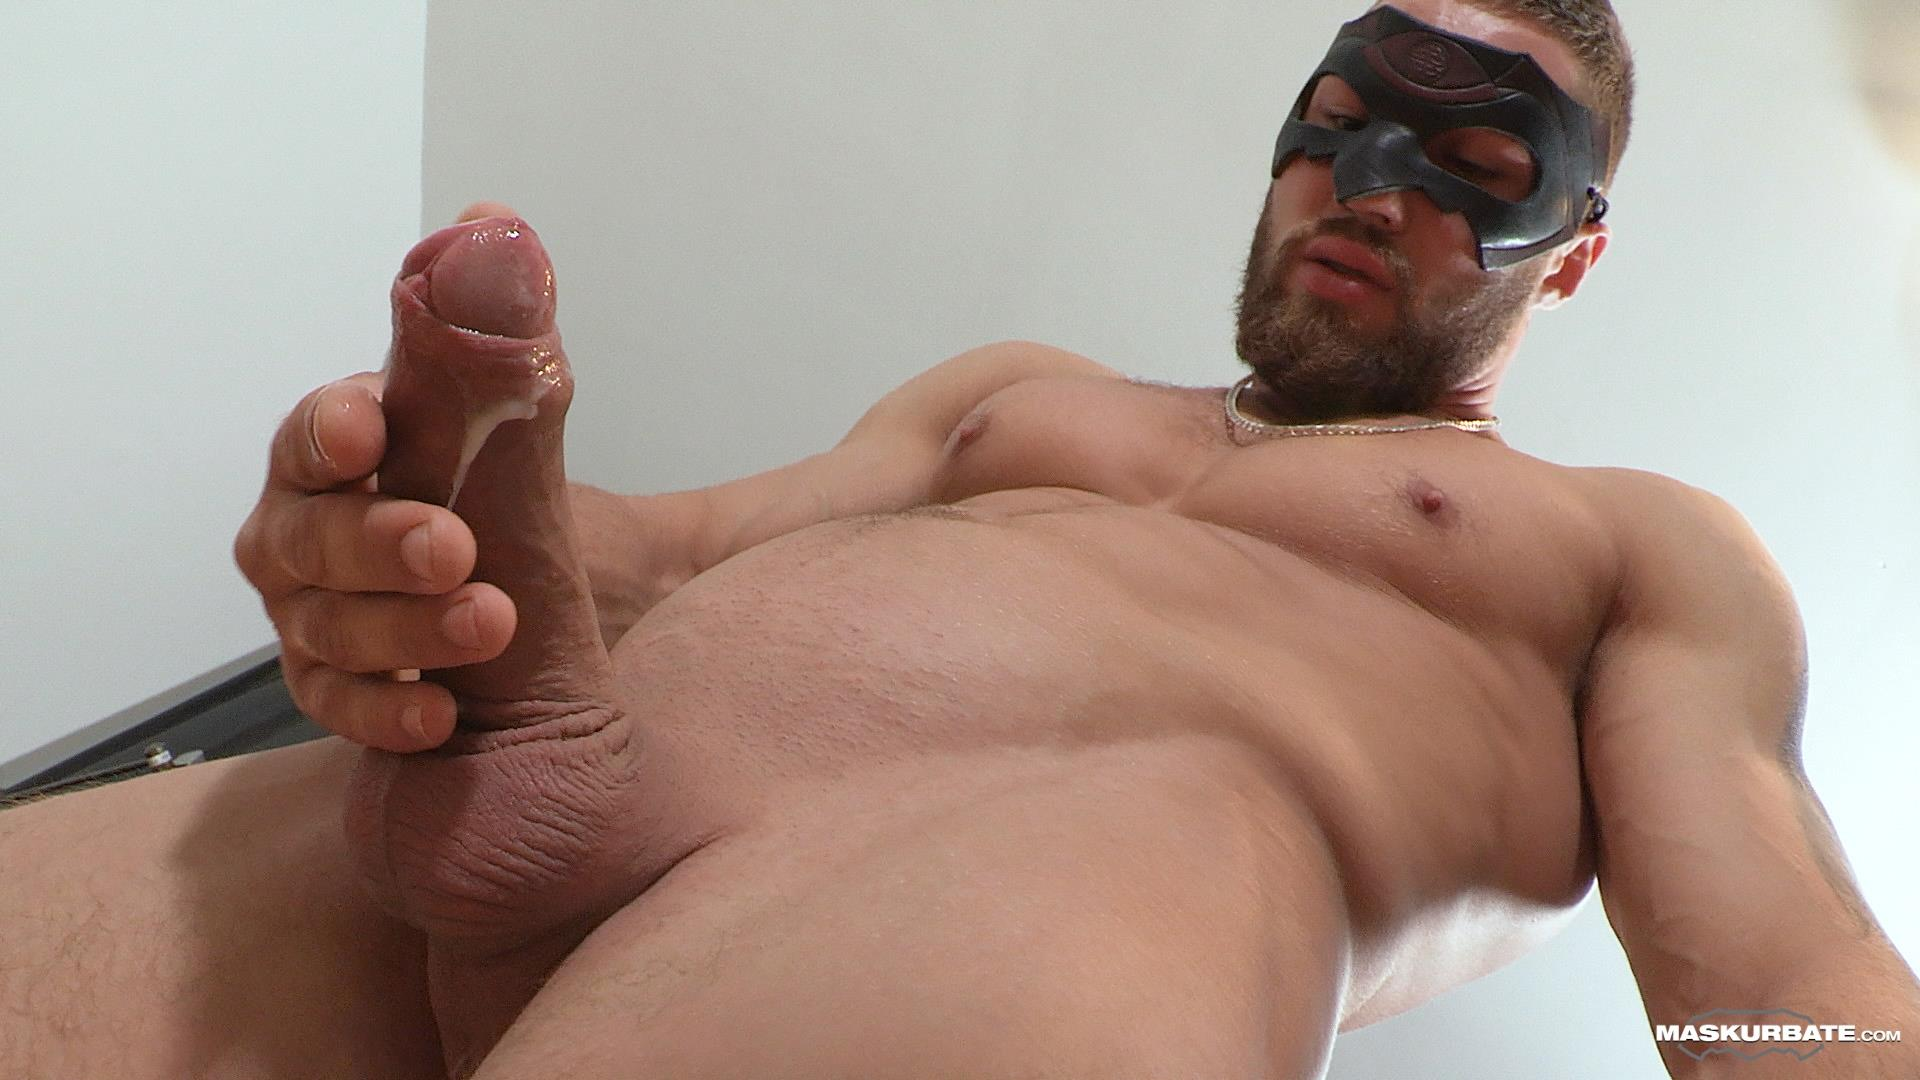 big gay uncut cock videos